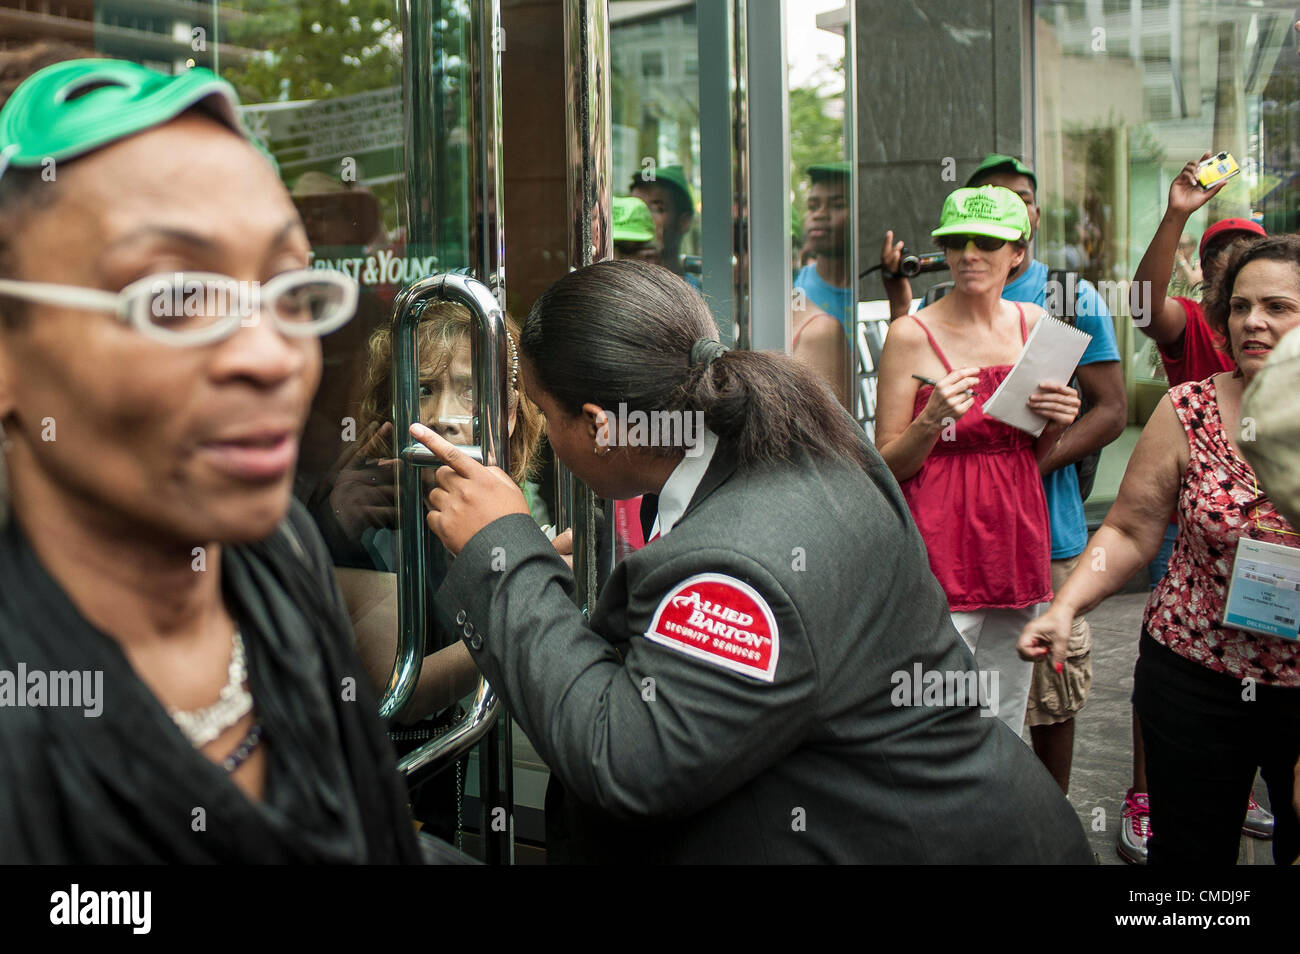 July 24, 2012 - U.S. - A security guard directs a woman in her buidling to another exit as she guards the door at - Stock Image